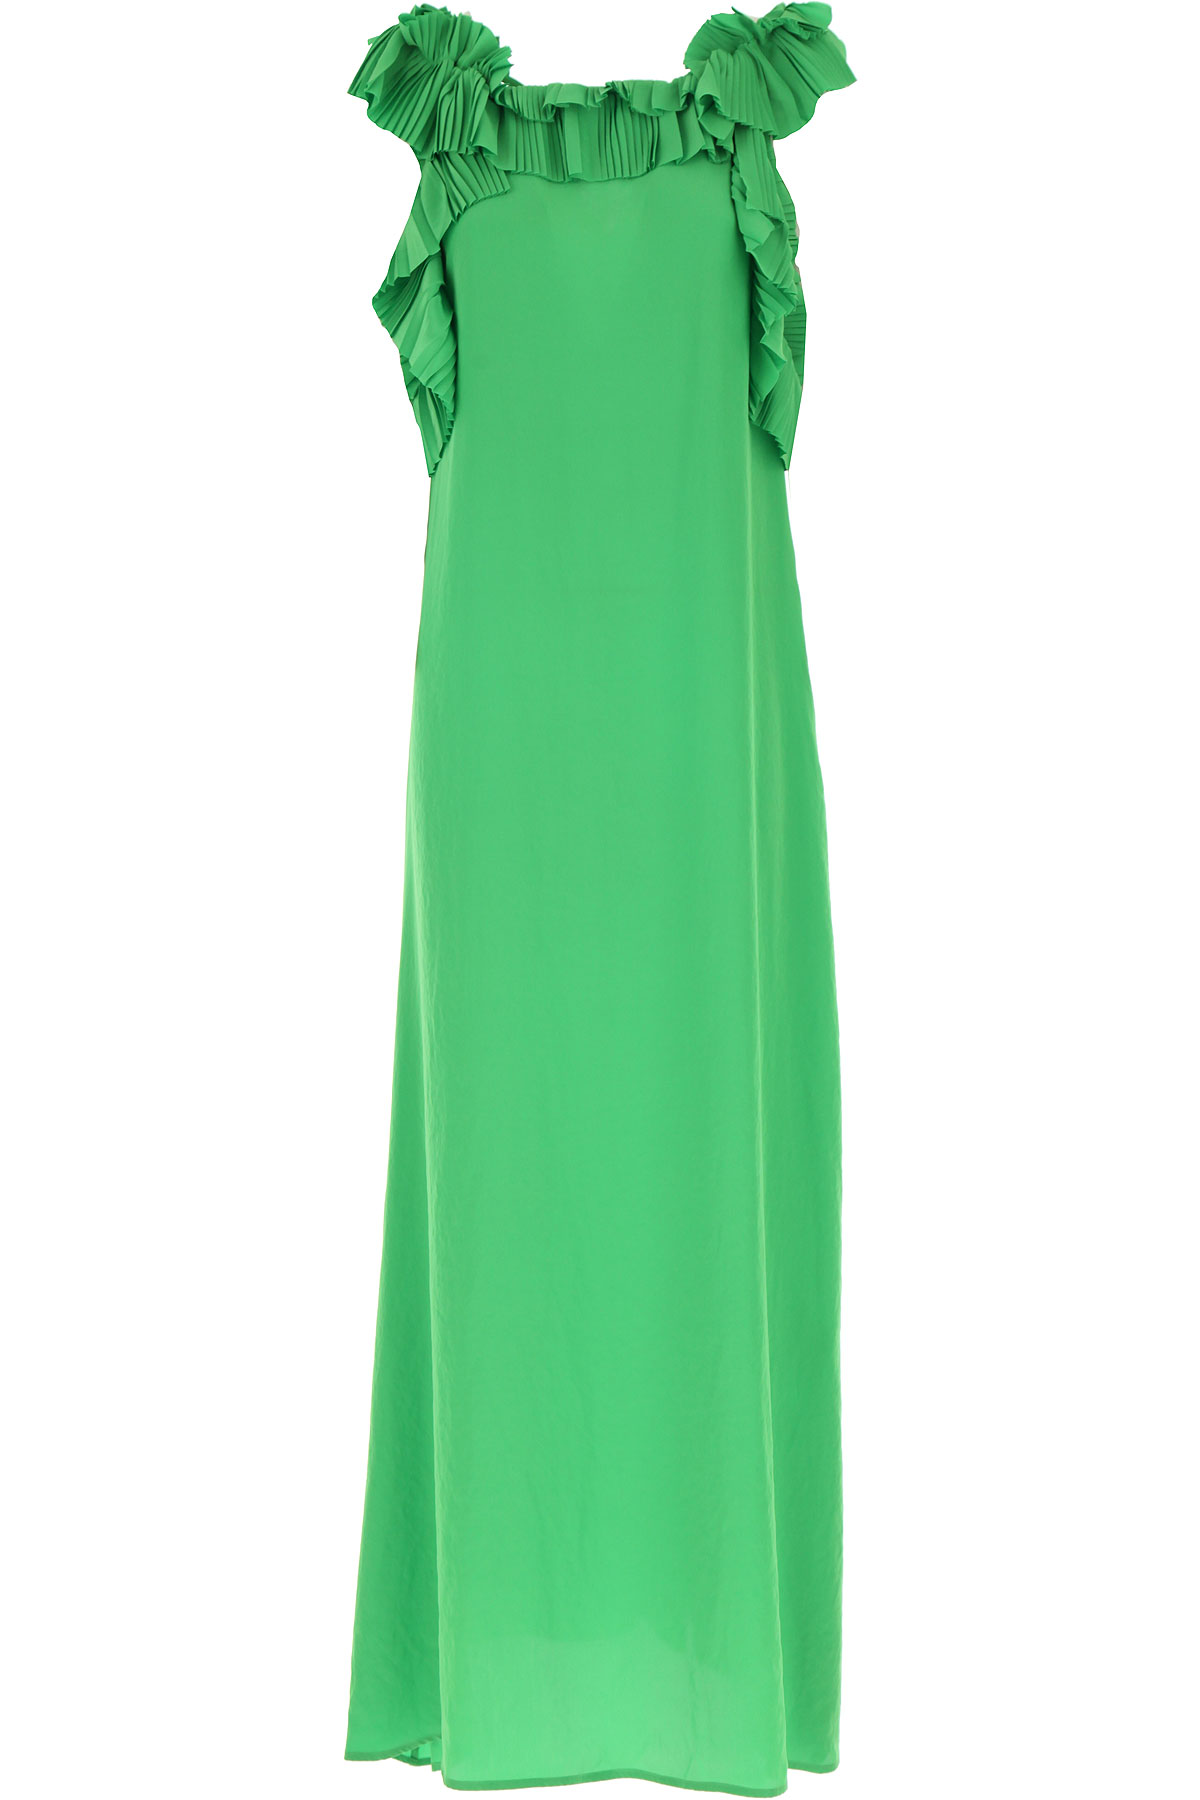 P.A.R.O.S.H. Dress for Women, Evening Cocktail Party On Sale, Green, polyester, 2019, 4